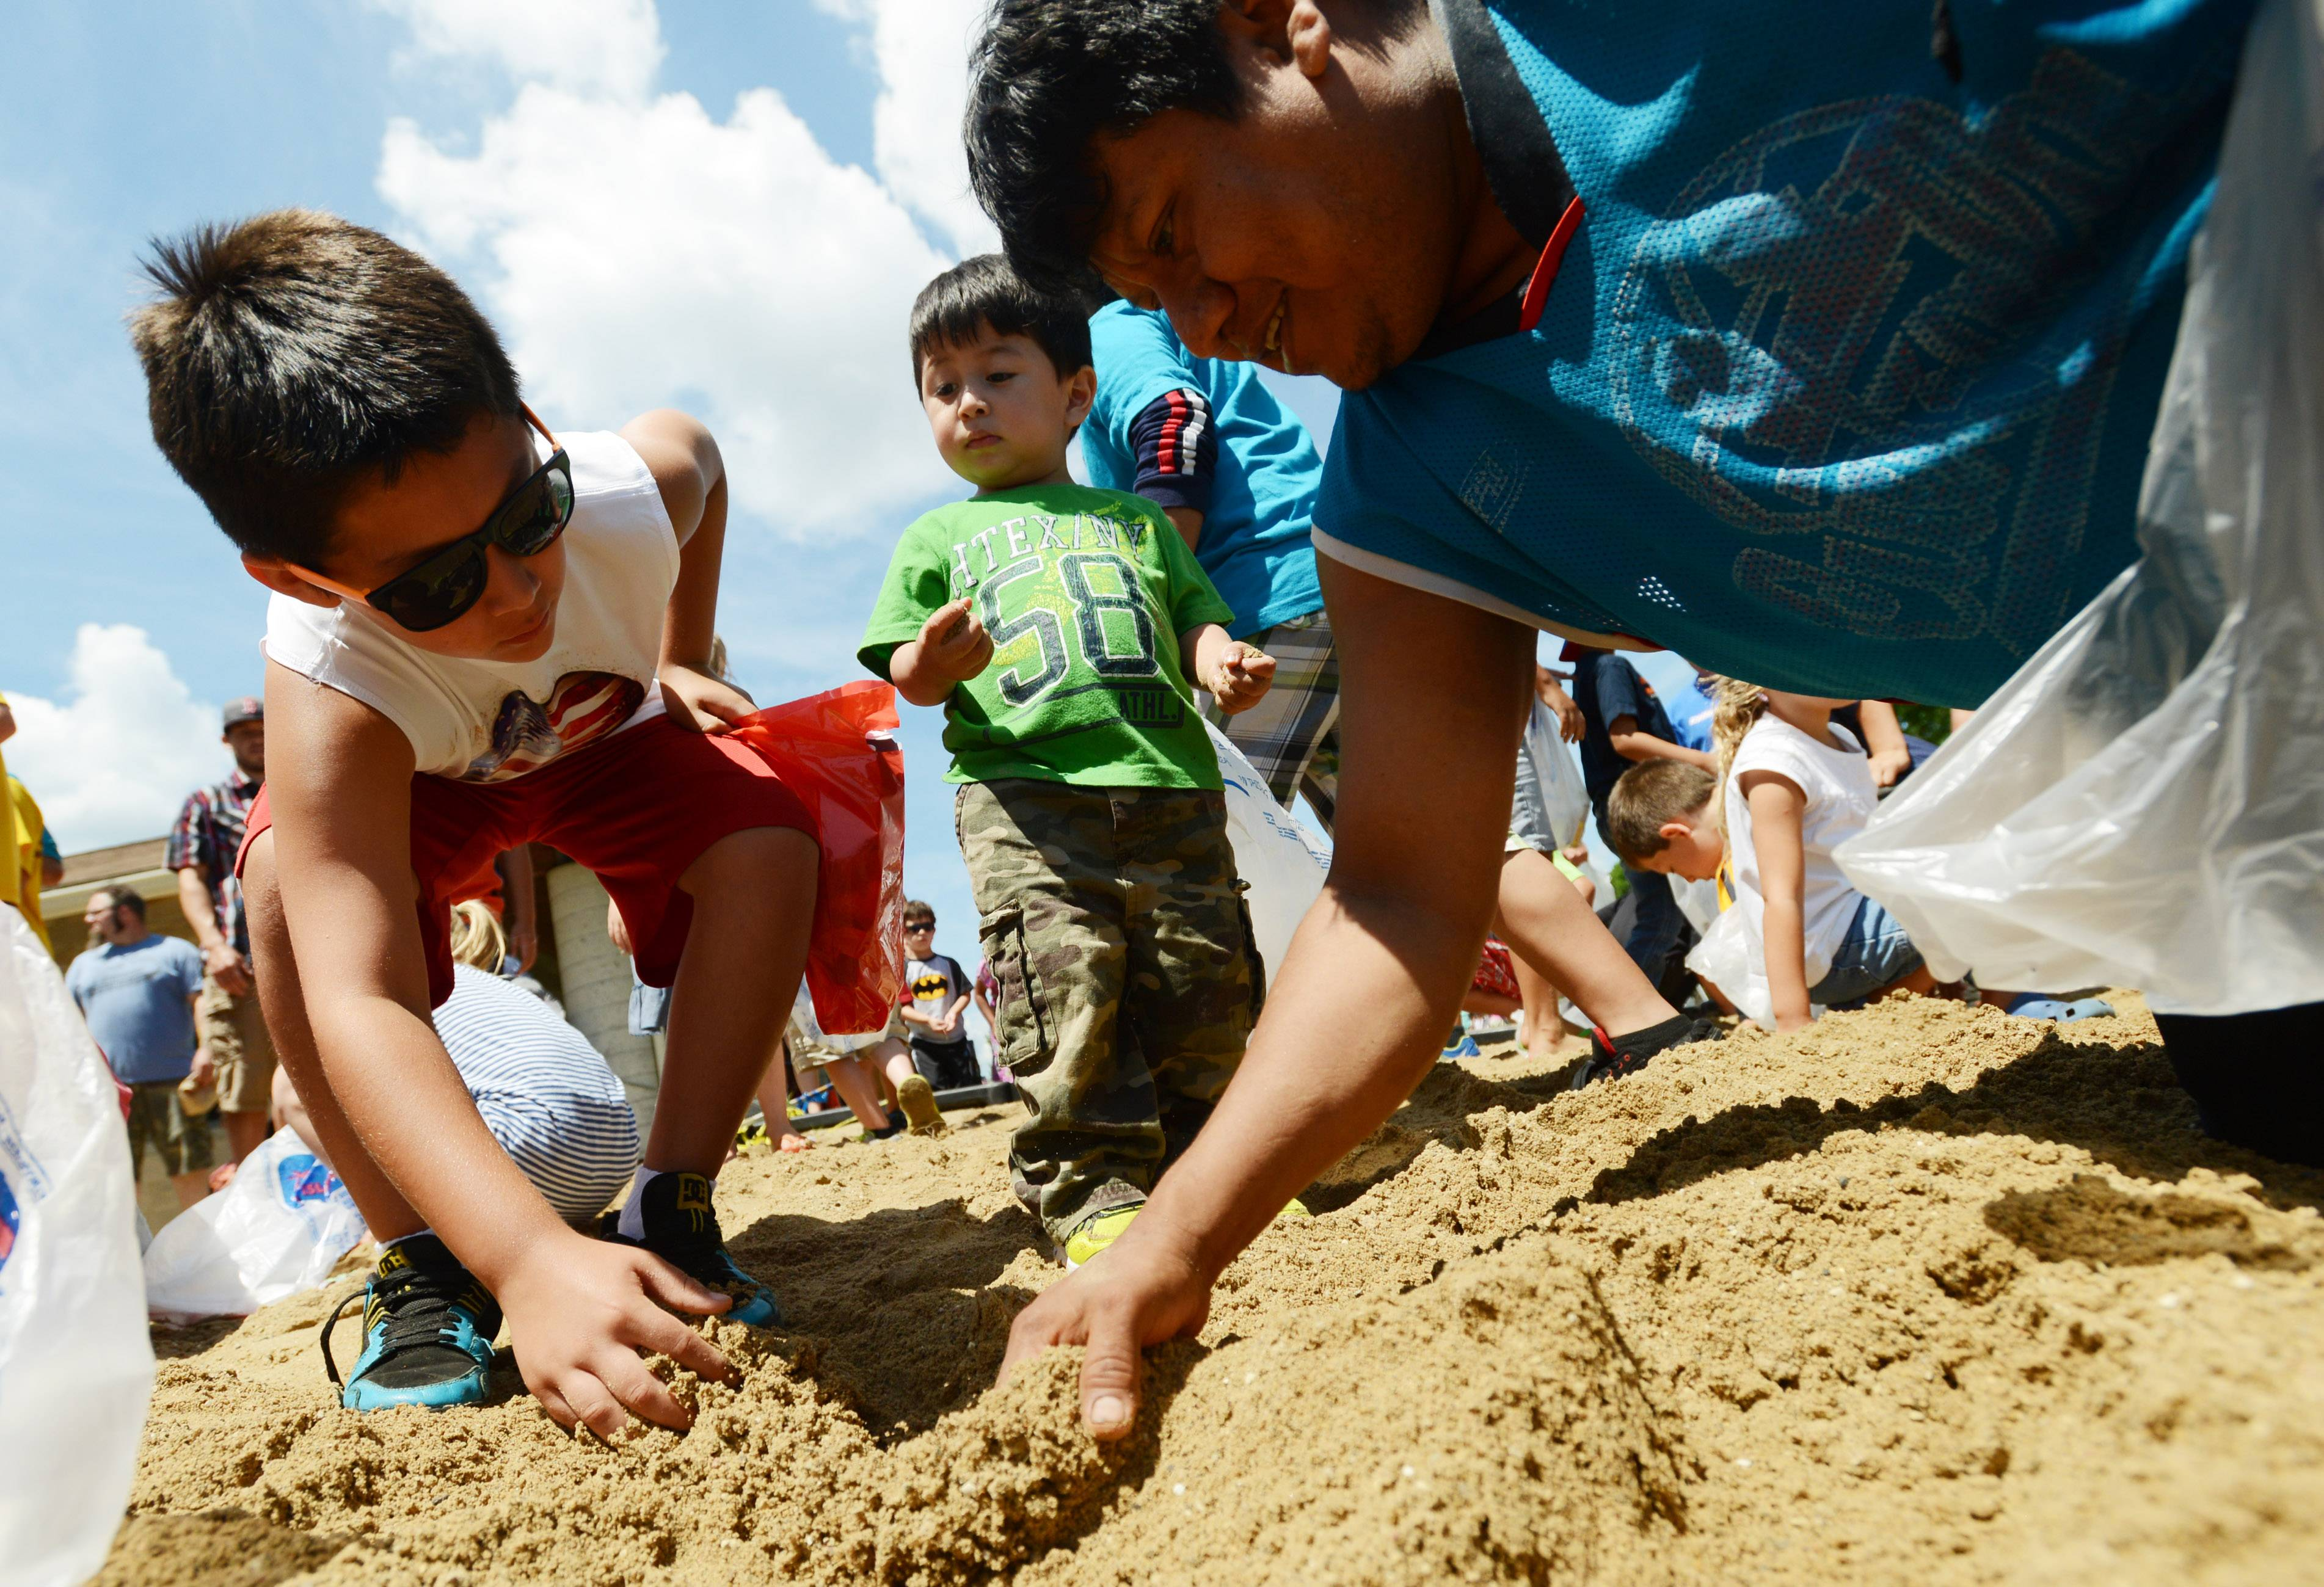 Two-year-old Ezequil Bello, center, watches as his dad Baltazar Bello, both of Island Lake, digs for goodies during a treasure hunt on the Veteran's Park beach in Island Lake Friday. The town held a community picnic follow its Fourth of July parade.